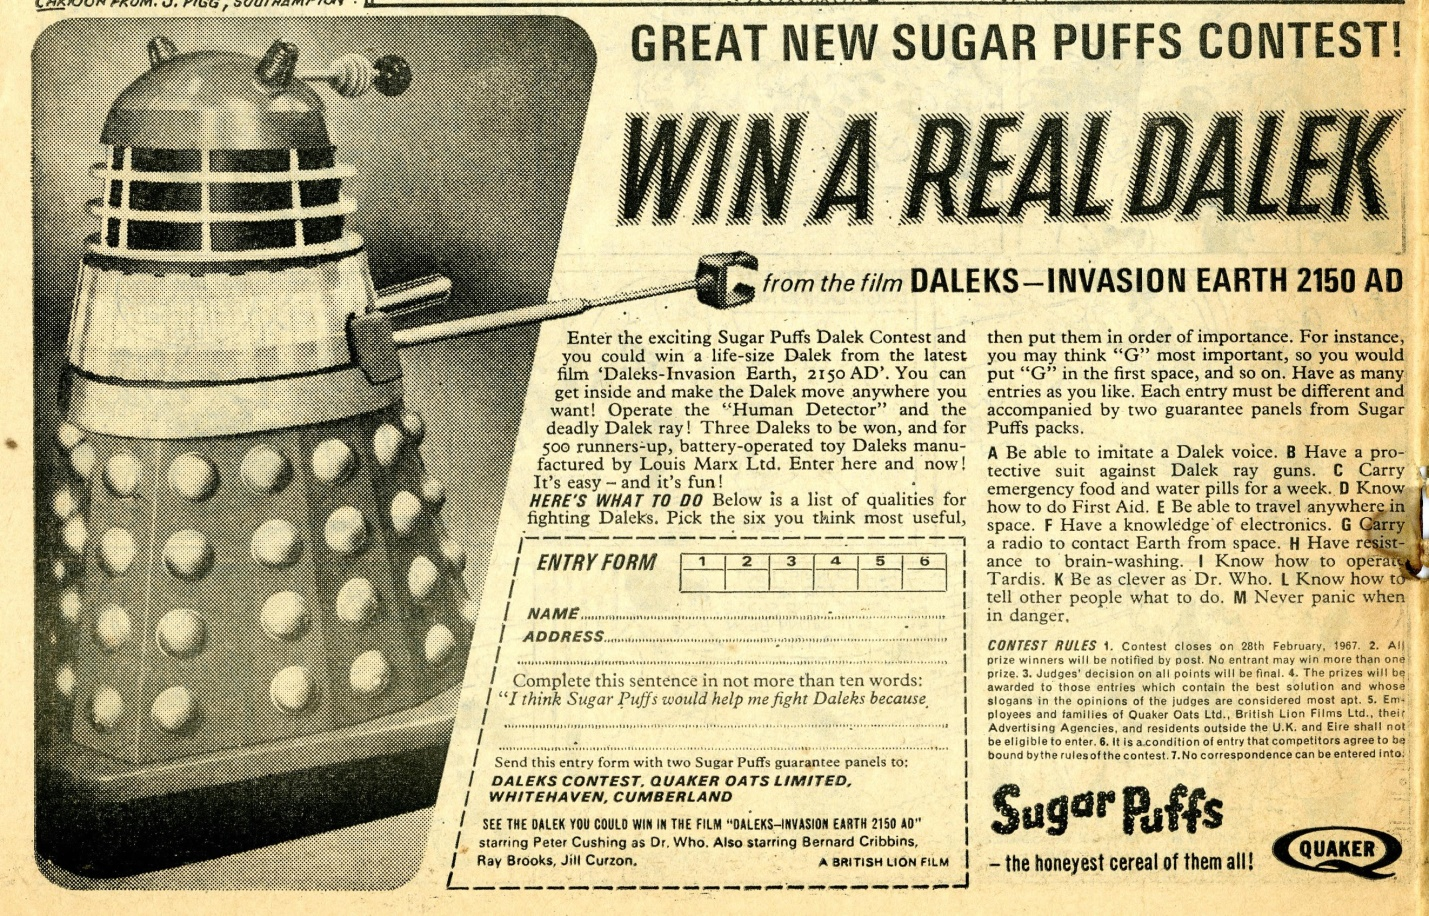 Sugar Puffs Win a Dalek competition ad in Smash no. 31, 3 September 1966